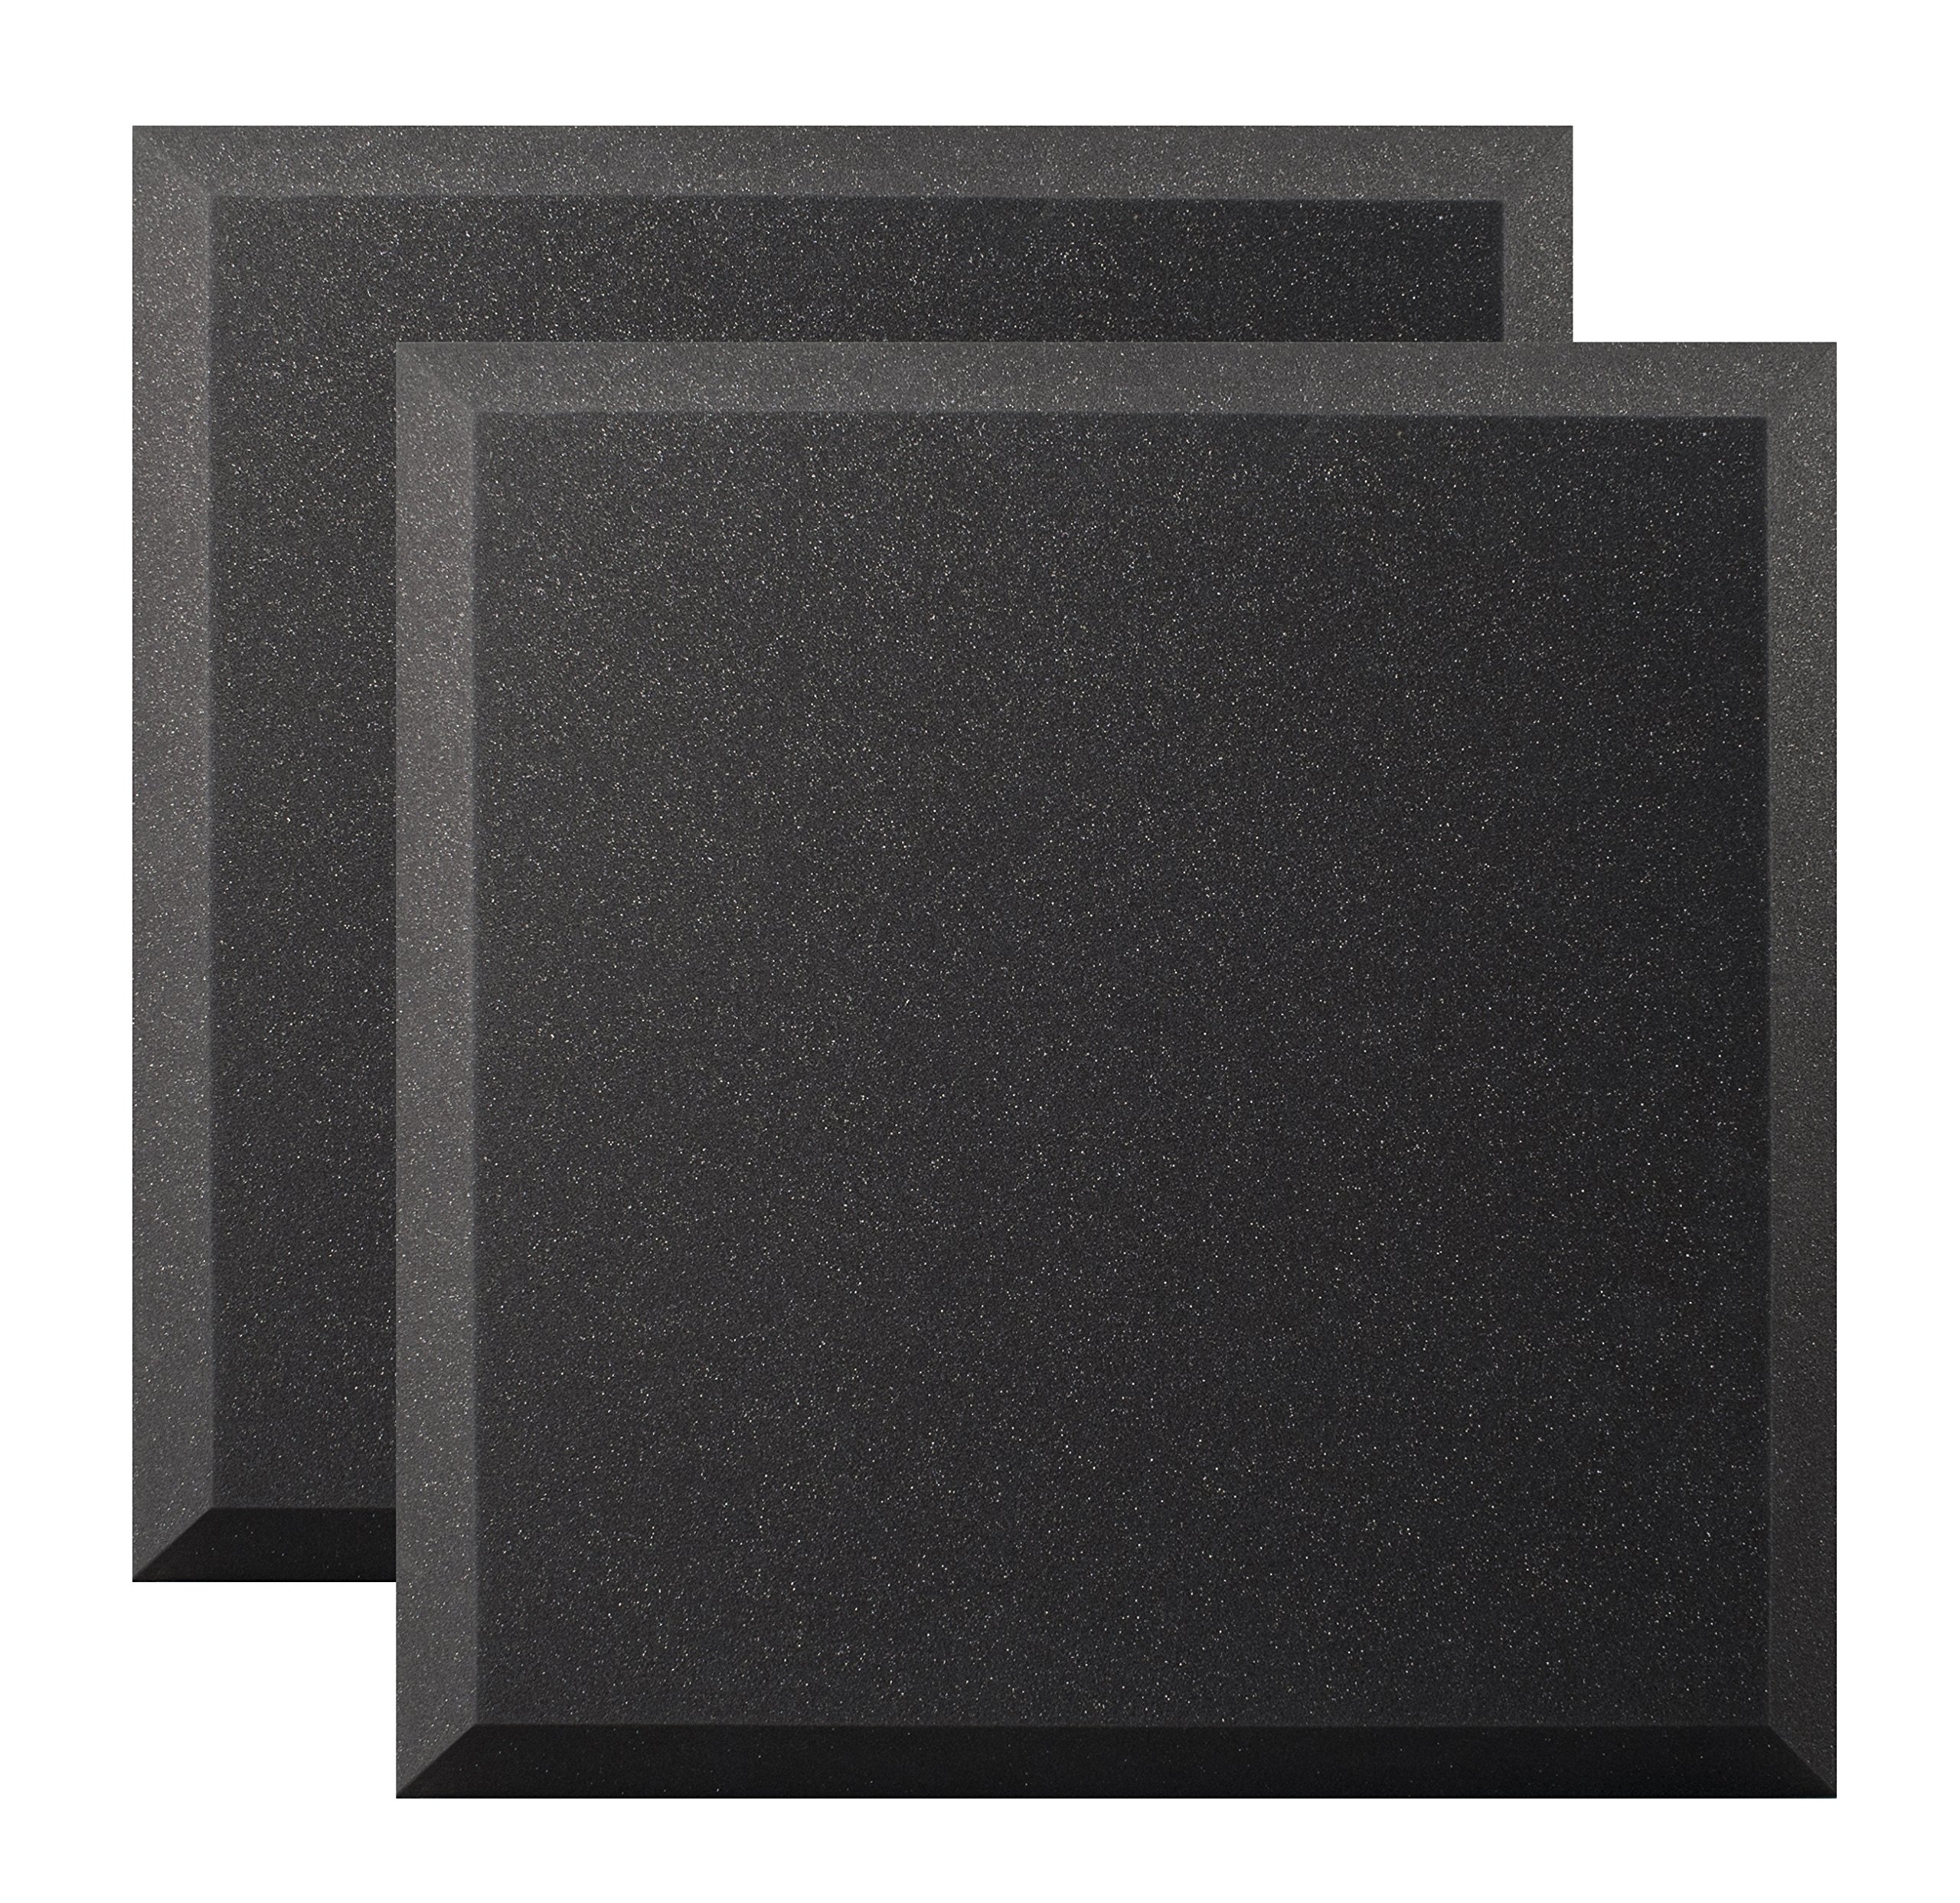 Ultimate Acoustics UA-WPB-24 Wall Panel 24''x24''x2'' Professional Acoustic Foam with Bevel and Mounting Tabs Included, 4 Pairs